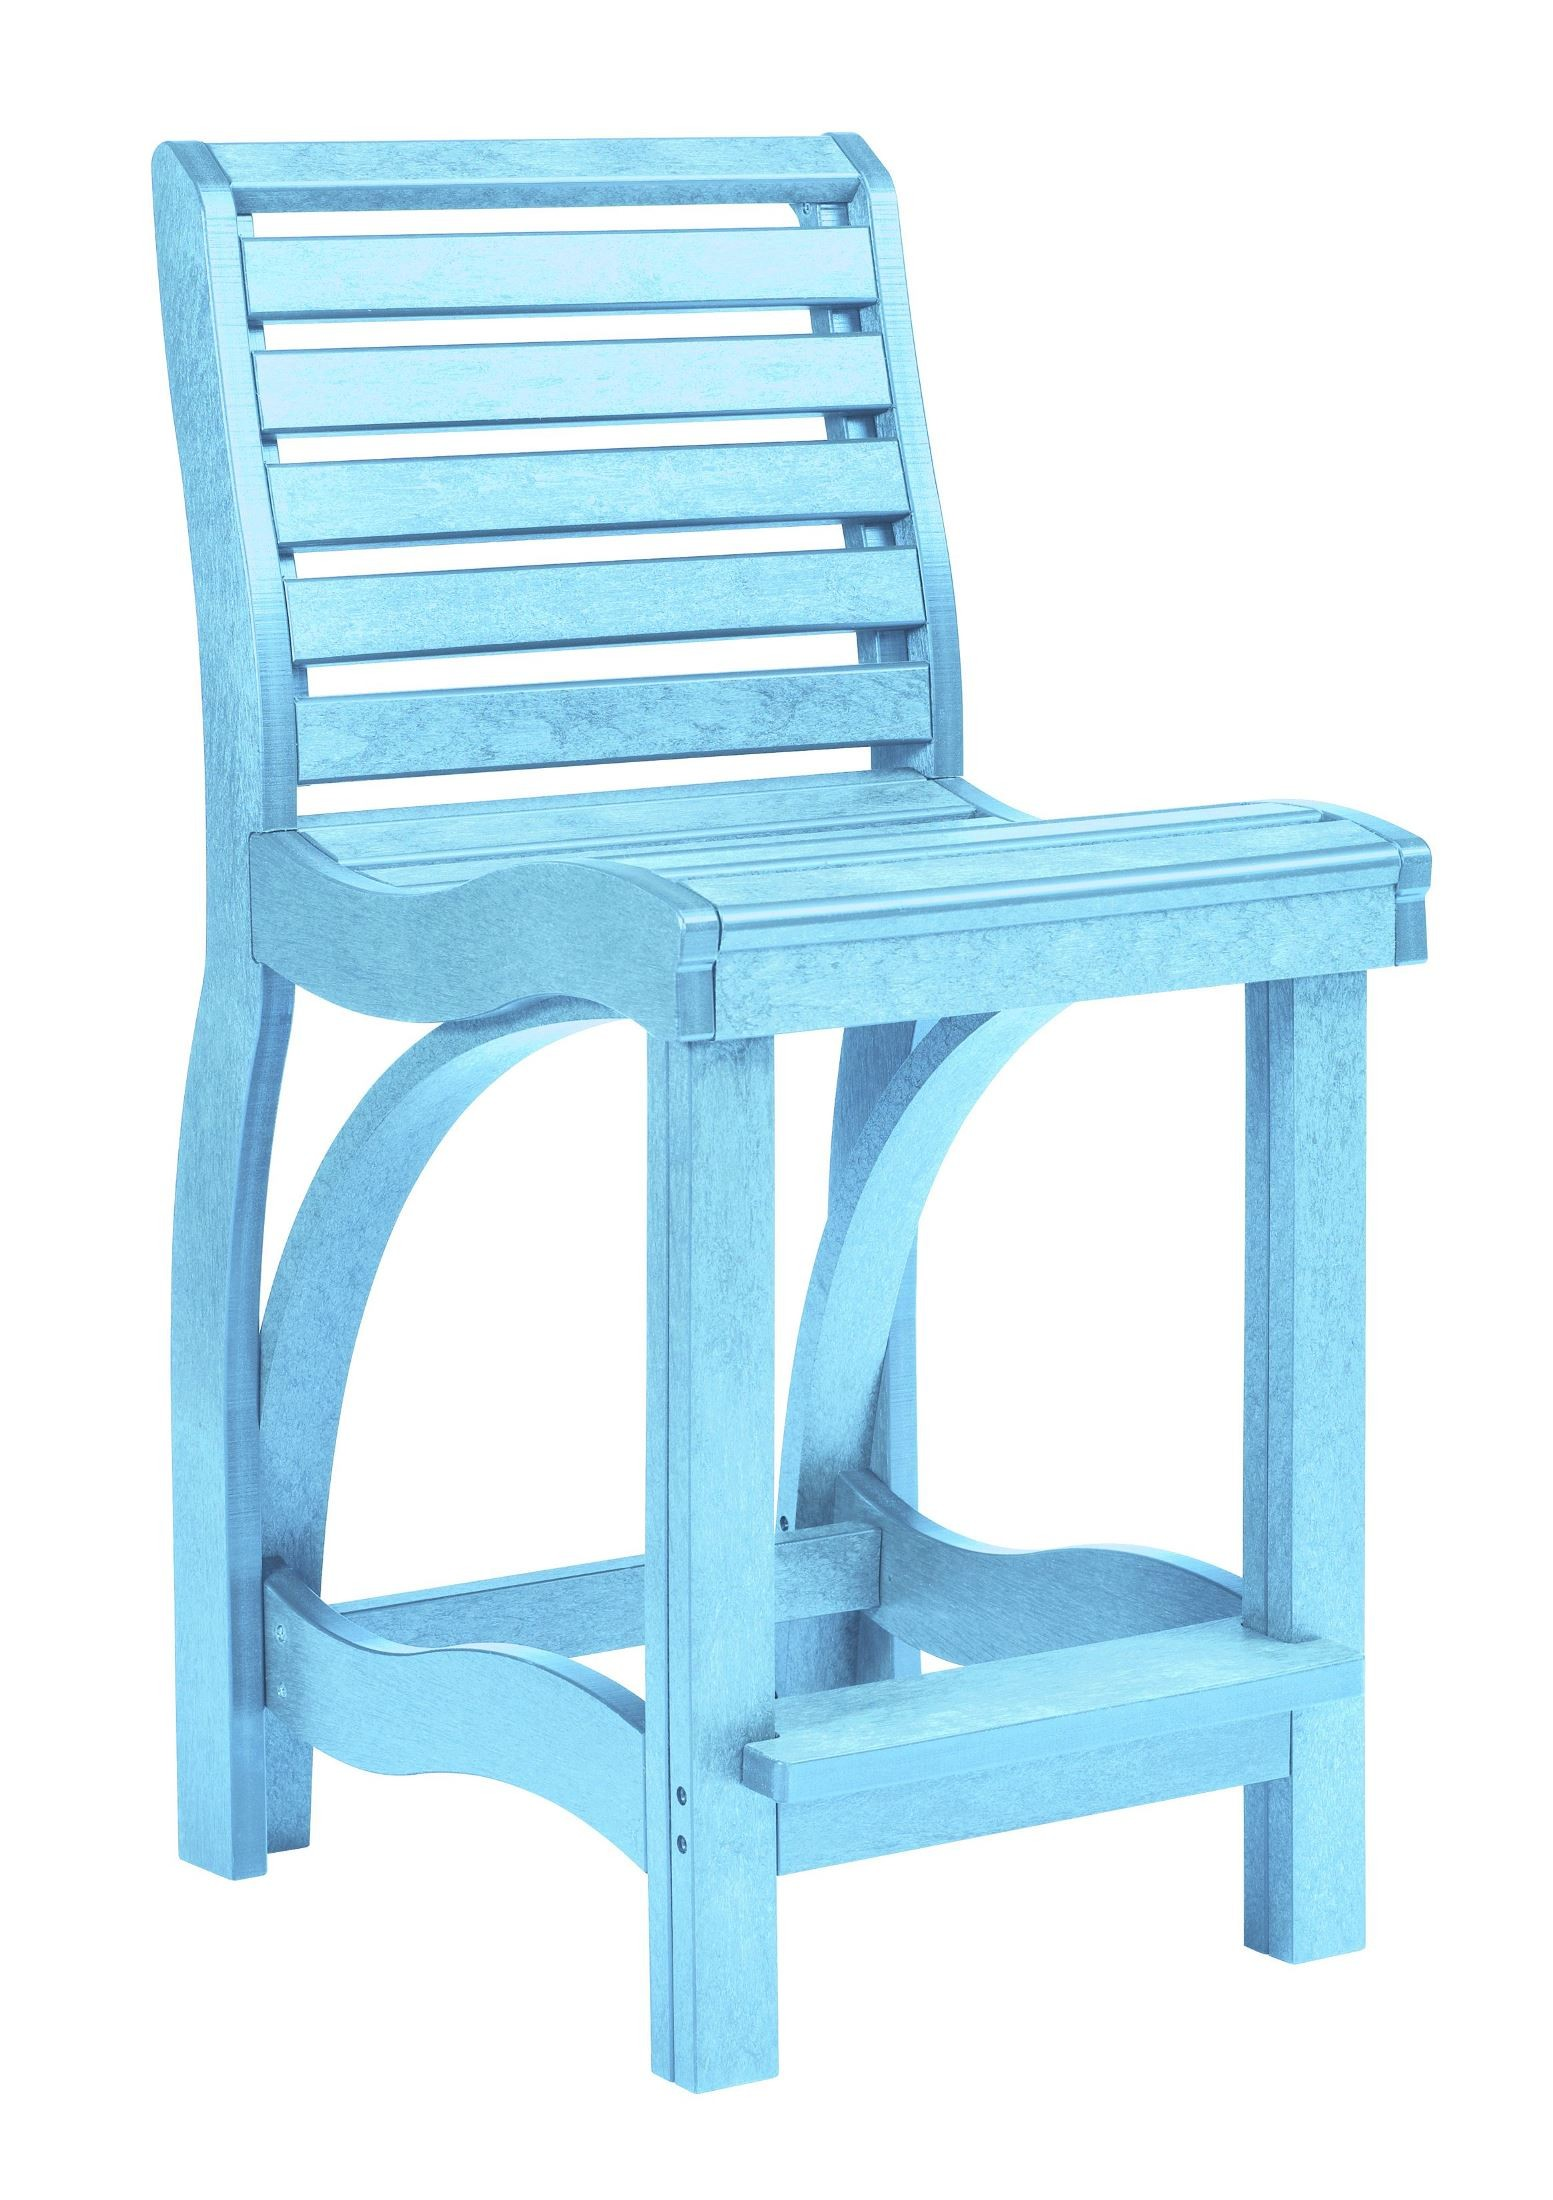 St Tropez Aqua Counter Chair From Cr Plastic C36 11